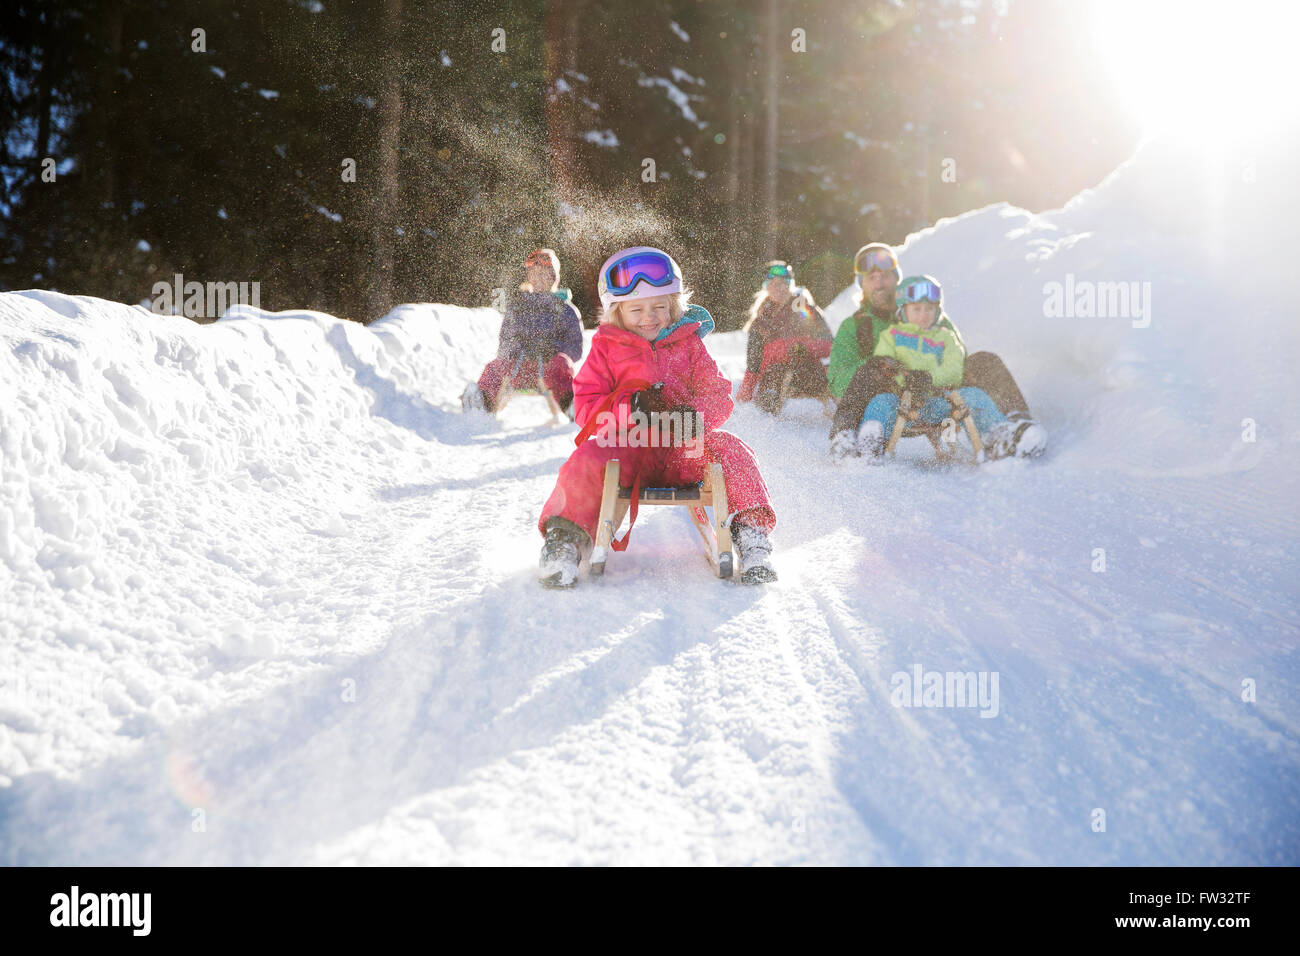 Girls, children riding sledges with their family, Muttereralm Innsbruck, Tyrol, Austria - Stock Image